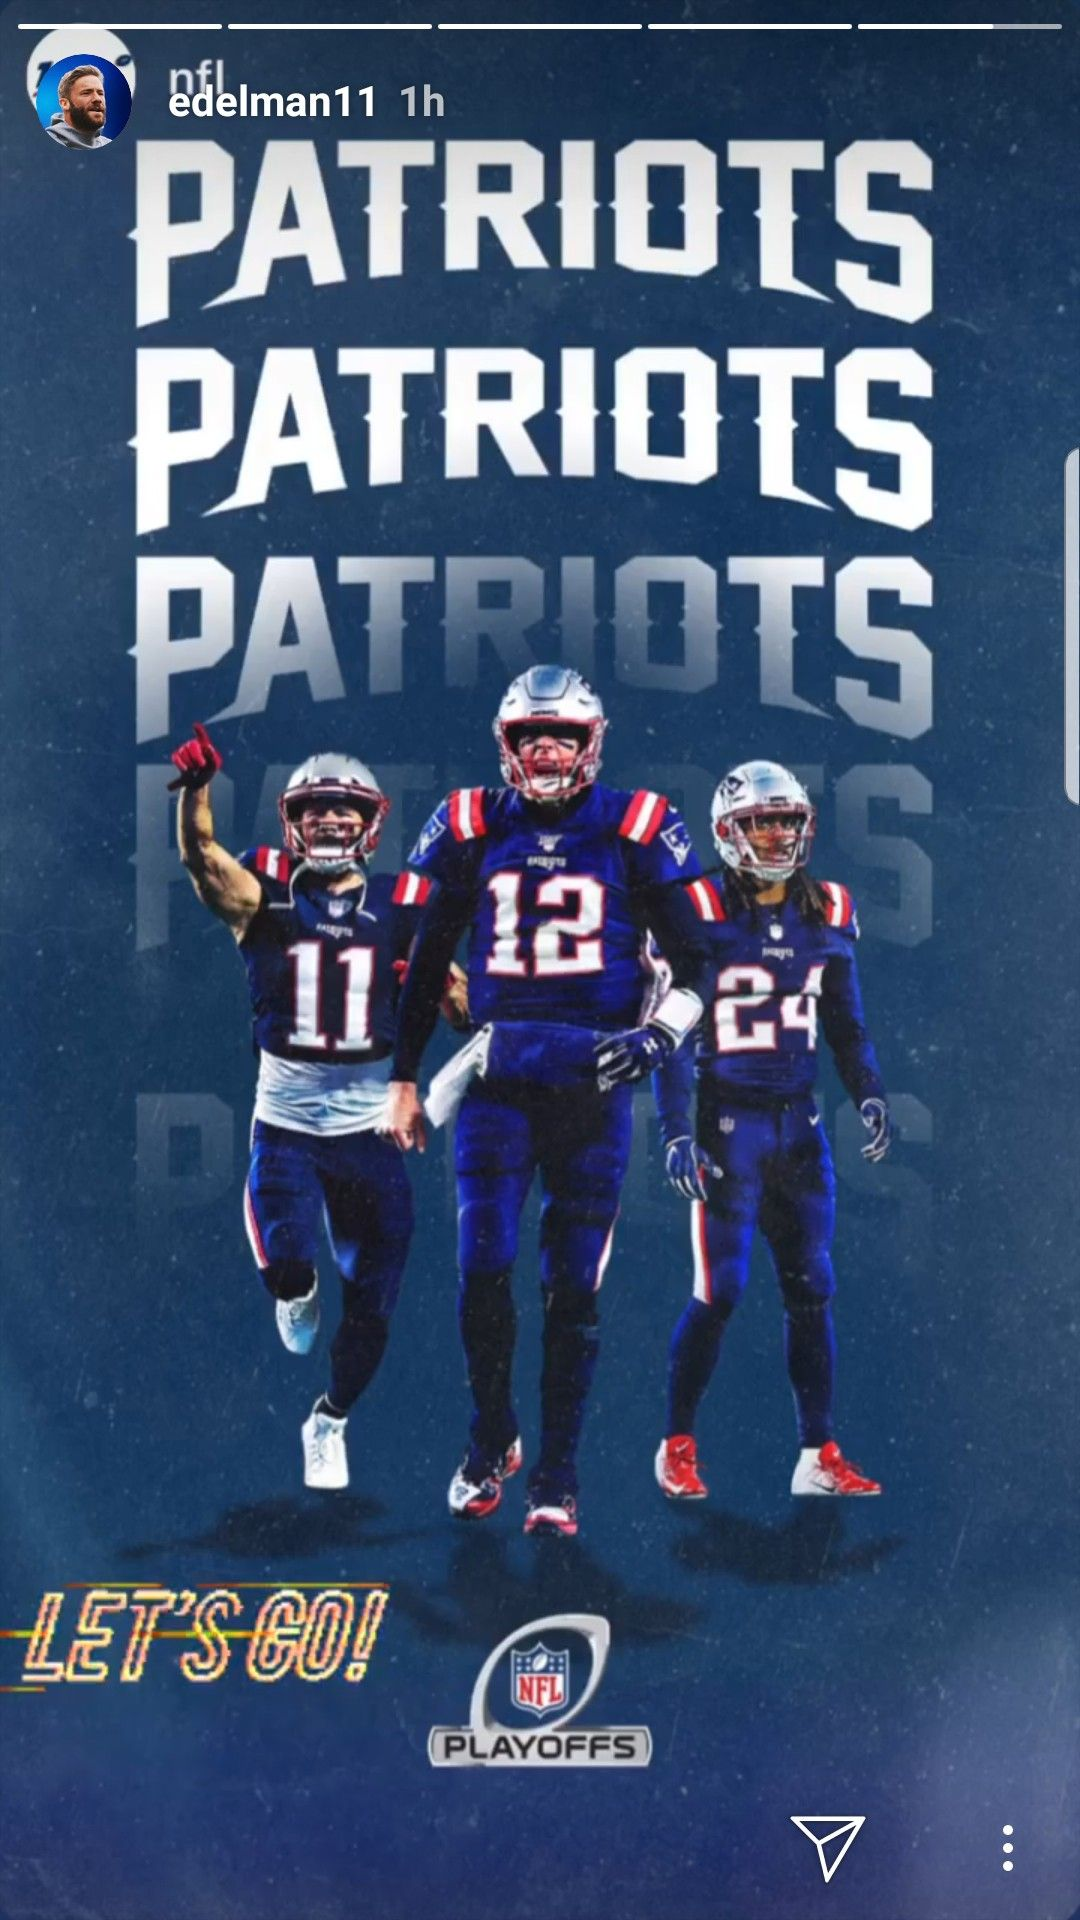 Pin By Linda Newell On Noodles Sports In 2020 New England Patriots Players New England Patriots Football Patriots Football